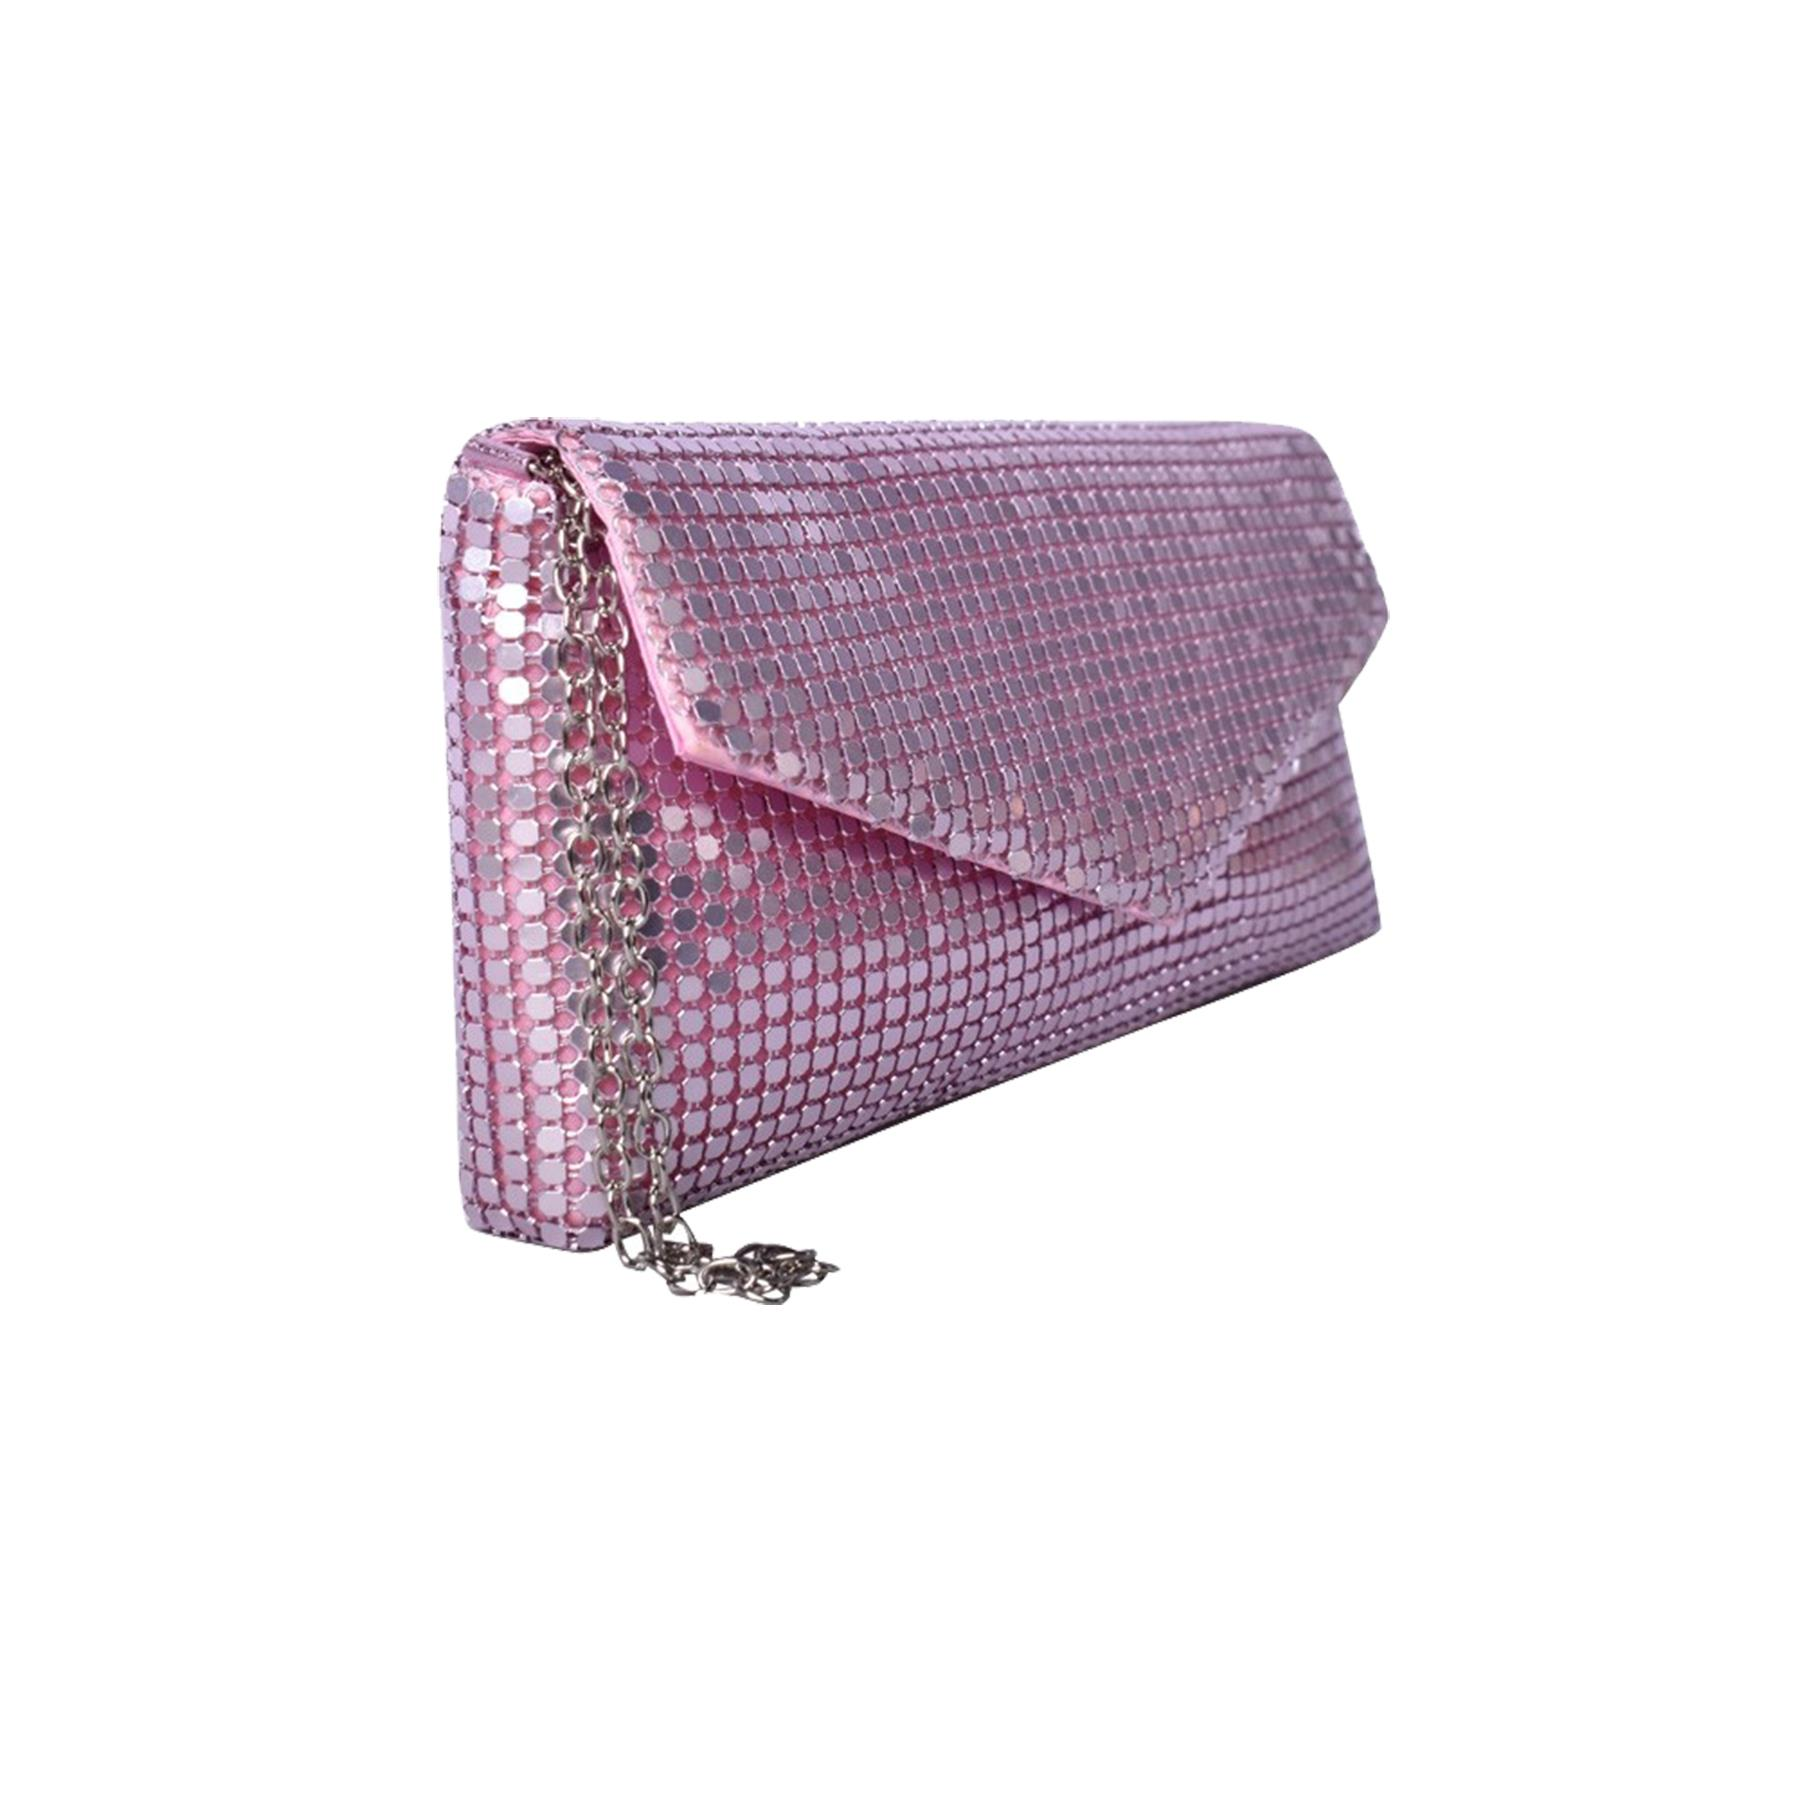 New-Ladies-Chainmail-Faux-Leather-Chain-Strap-Wedding-Clutch-Bag-Pouch thumbnail 24